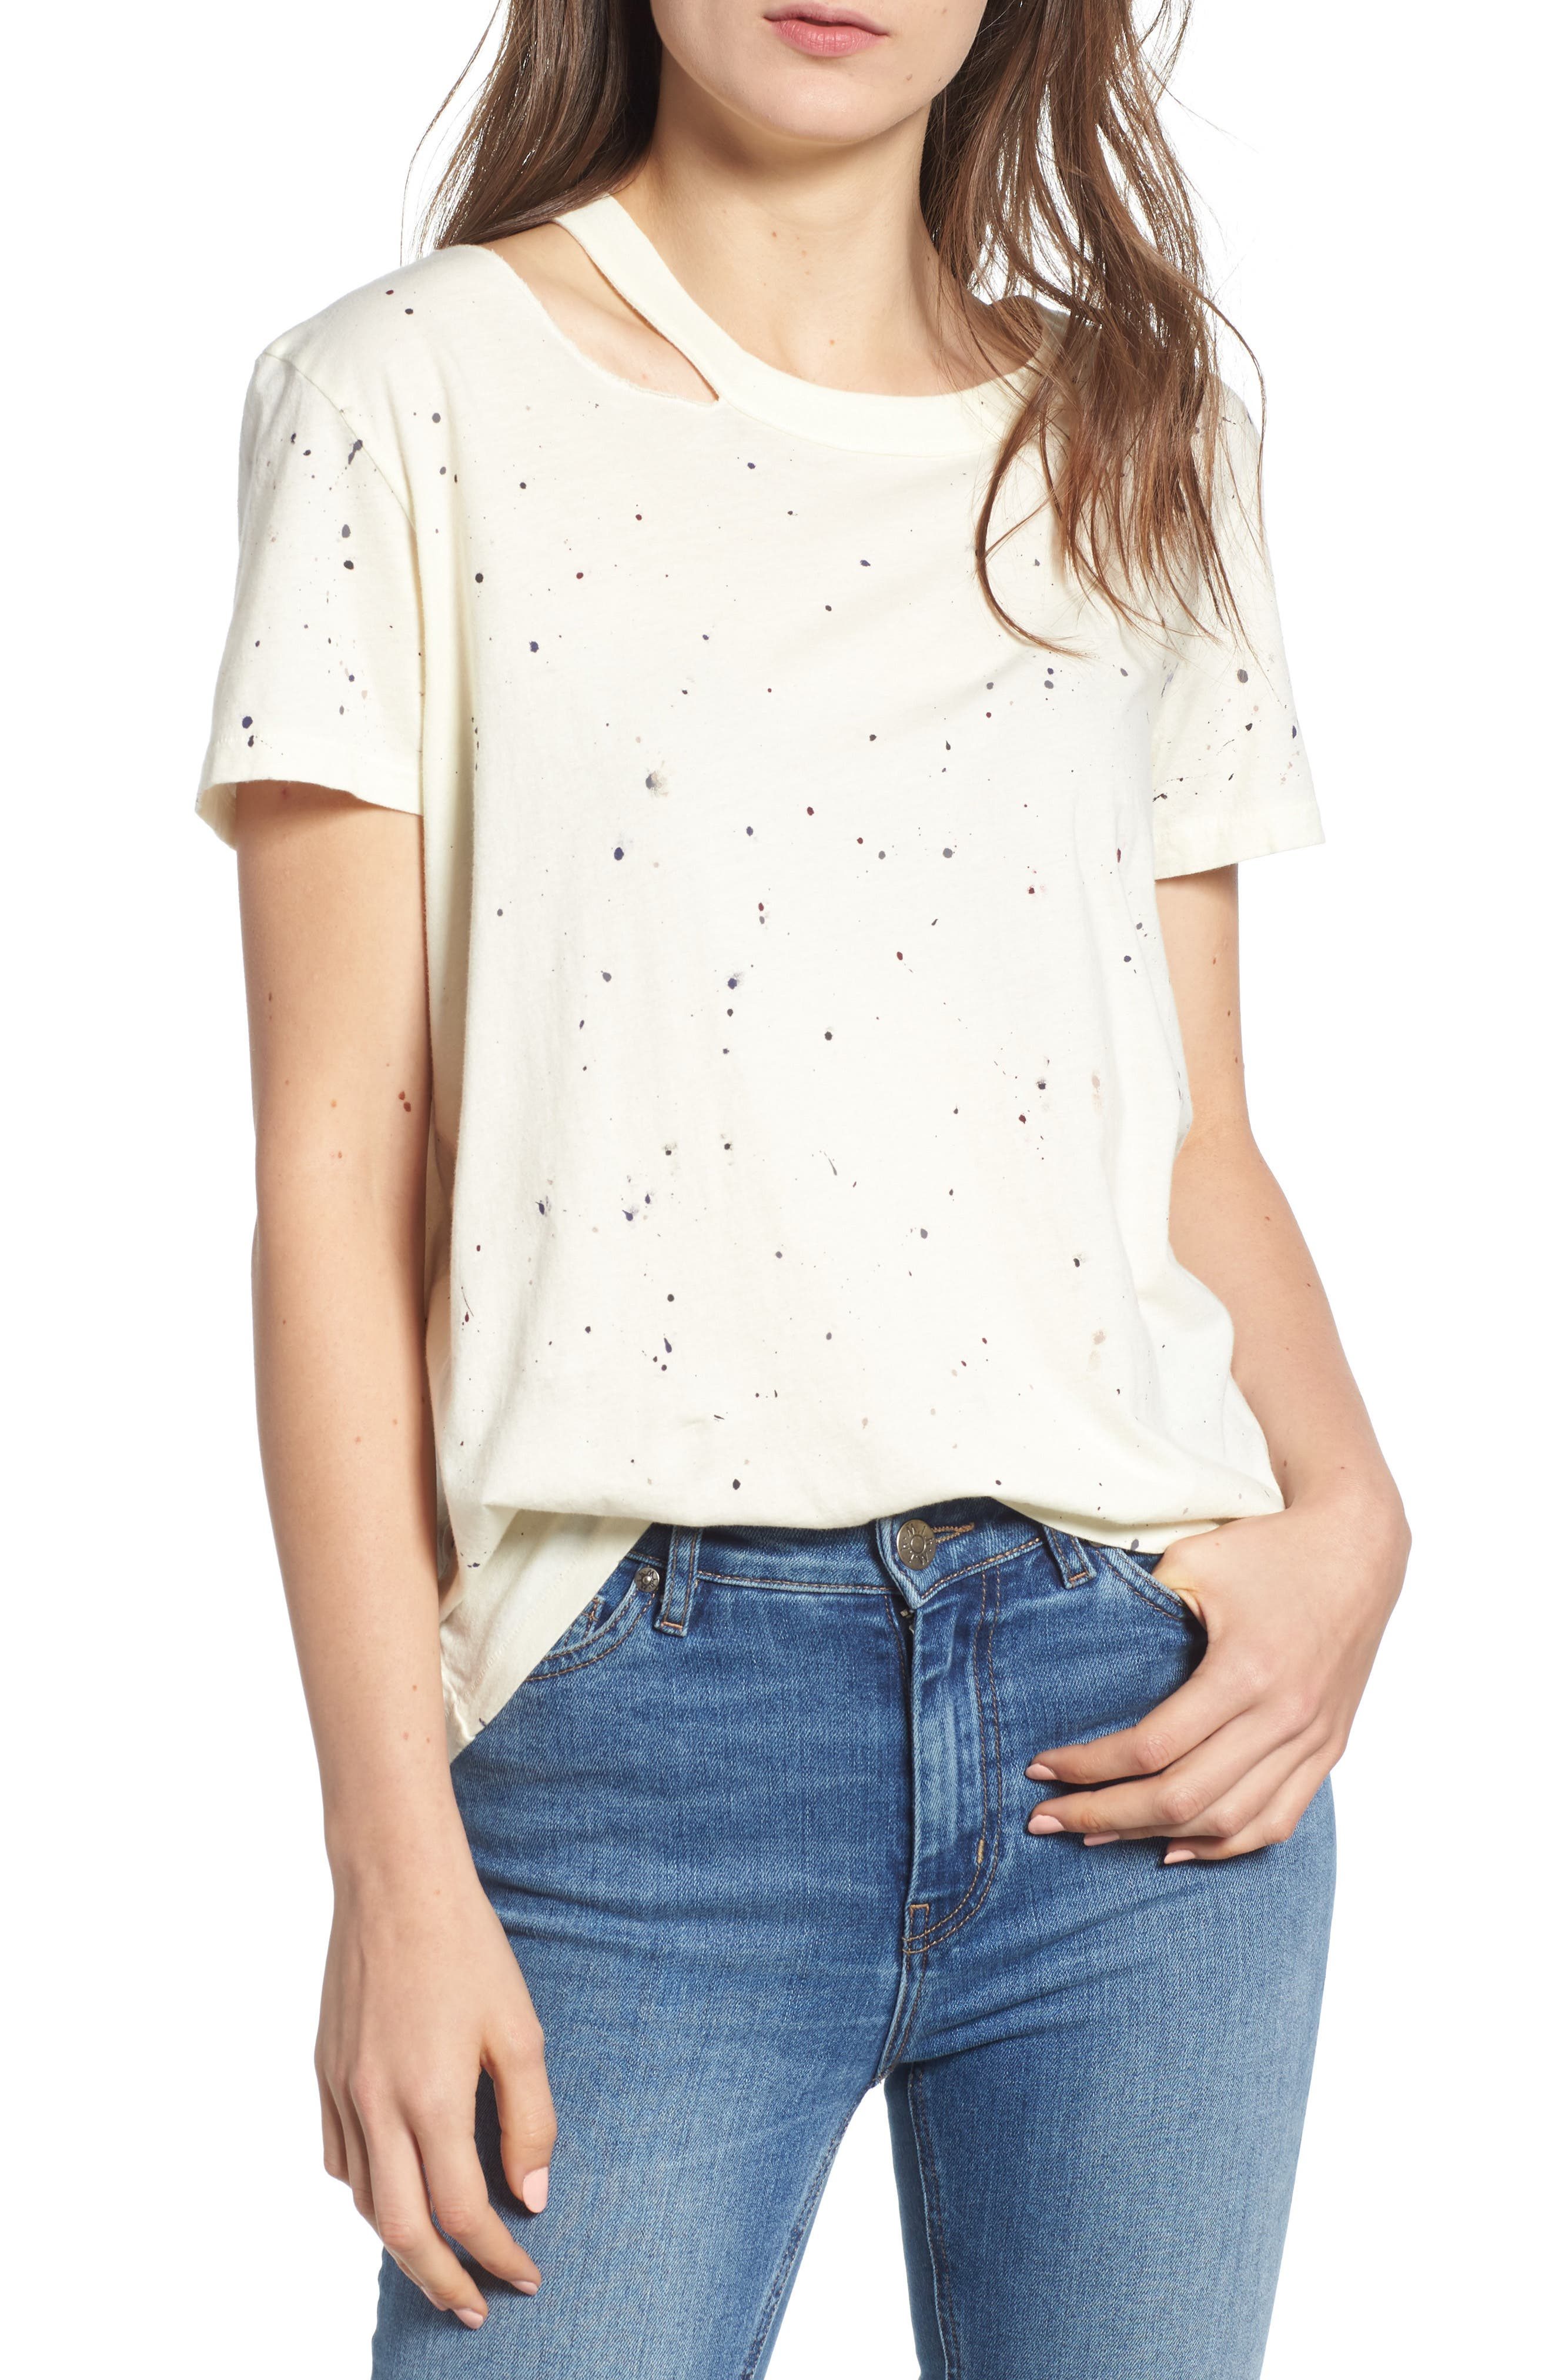 Zander Distressed Spatter Tee,                             Main thumbnail 1, color,                             CLOUD SPLATTER